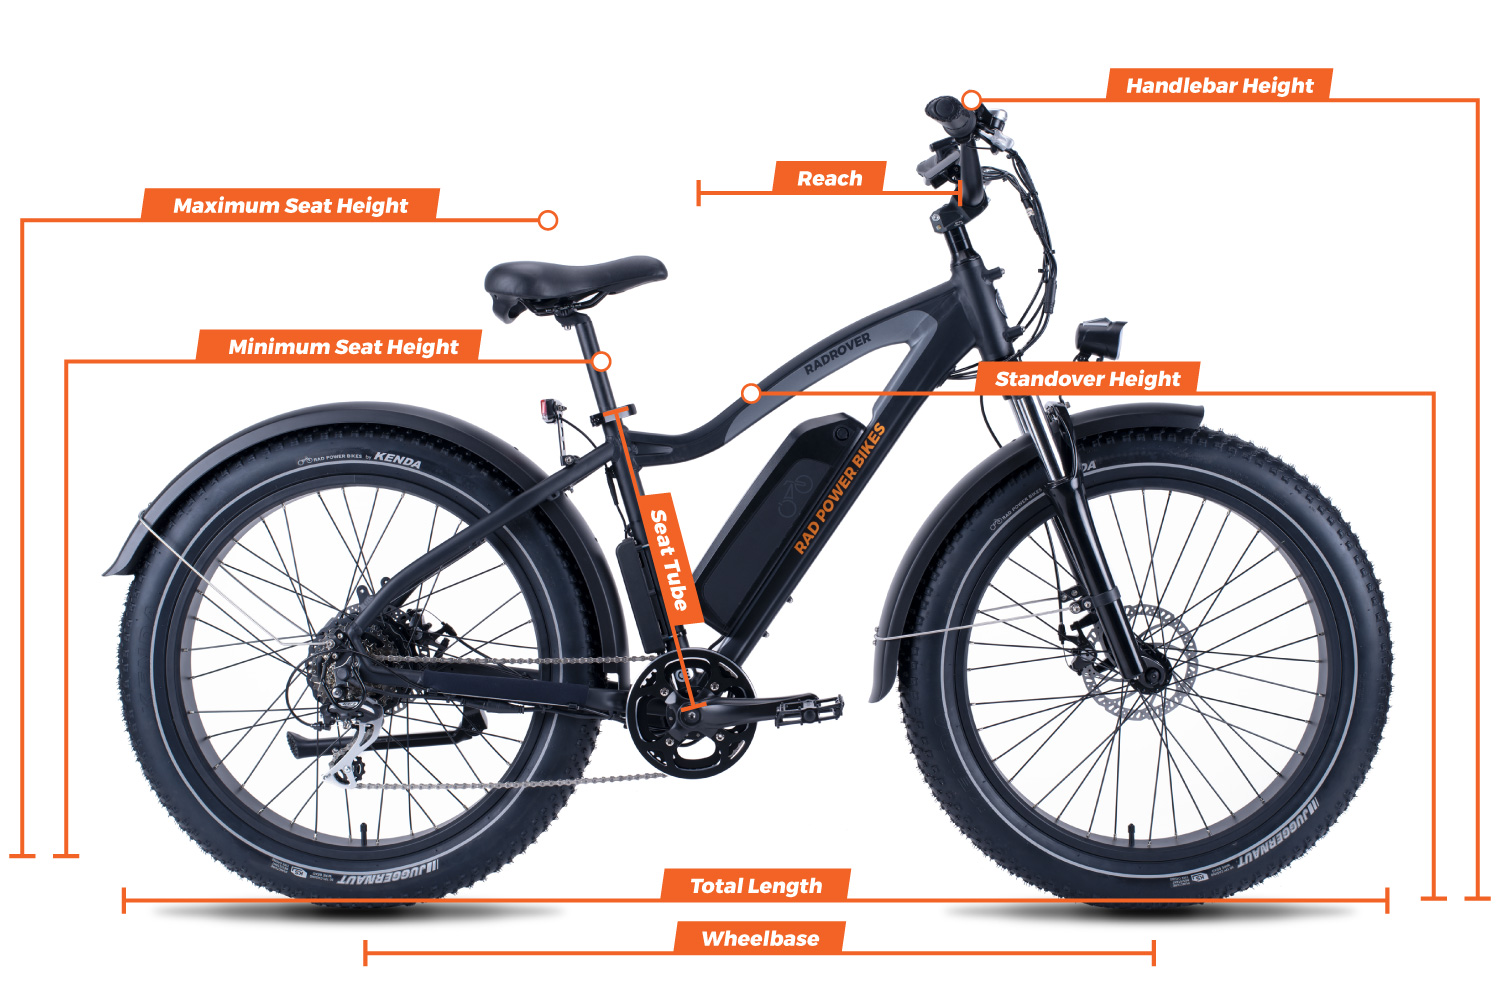 Geometry chart for the RadRover Electric Fat Bike Version 5